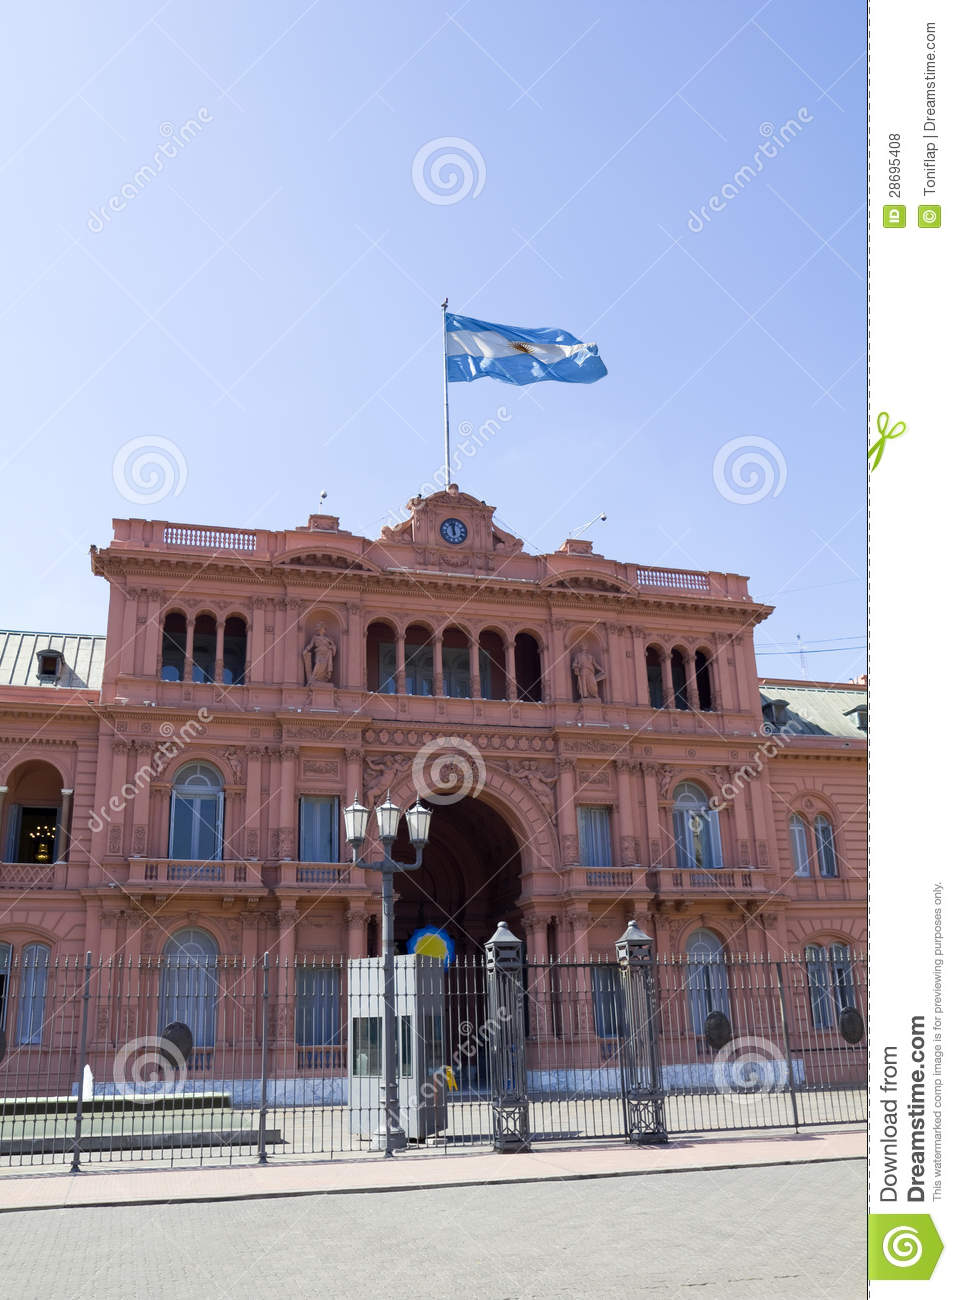 Download Argentine Girl Wallpaper For Mac: Argentine Government House Stock Photo. Image Of City